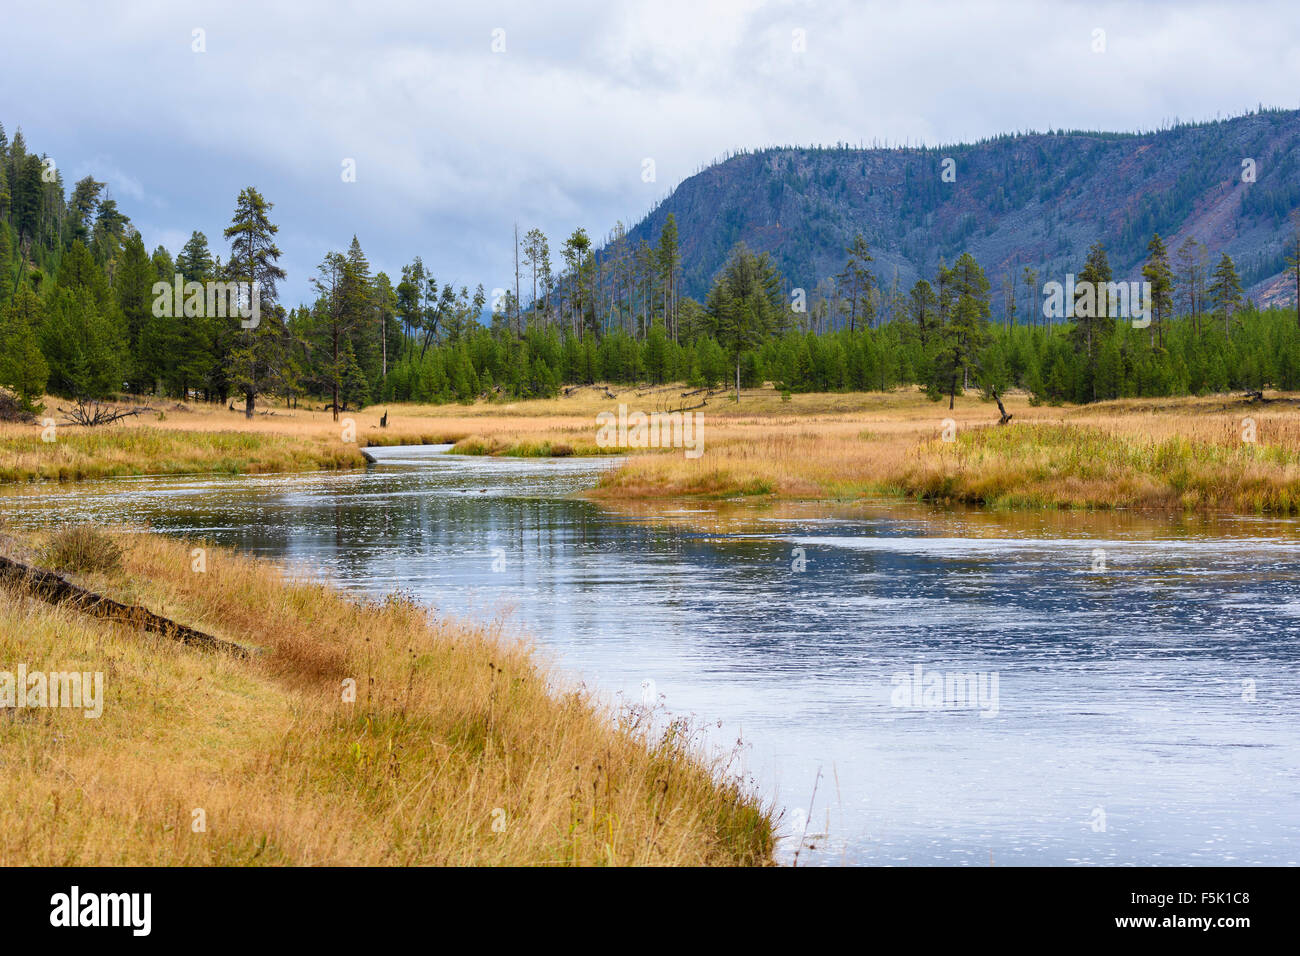 Madison River, Yellowstone National Park, Wyoming, USA - Stock Image